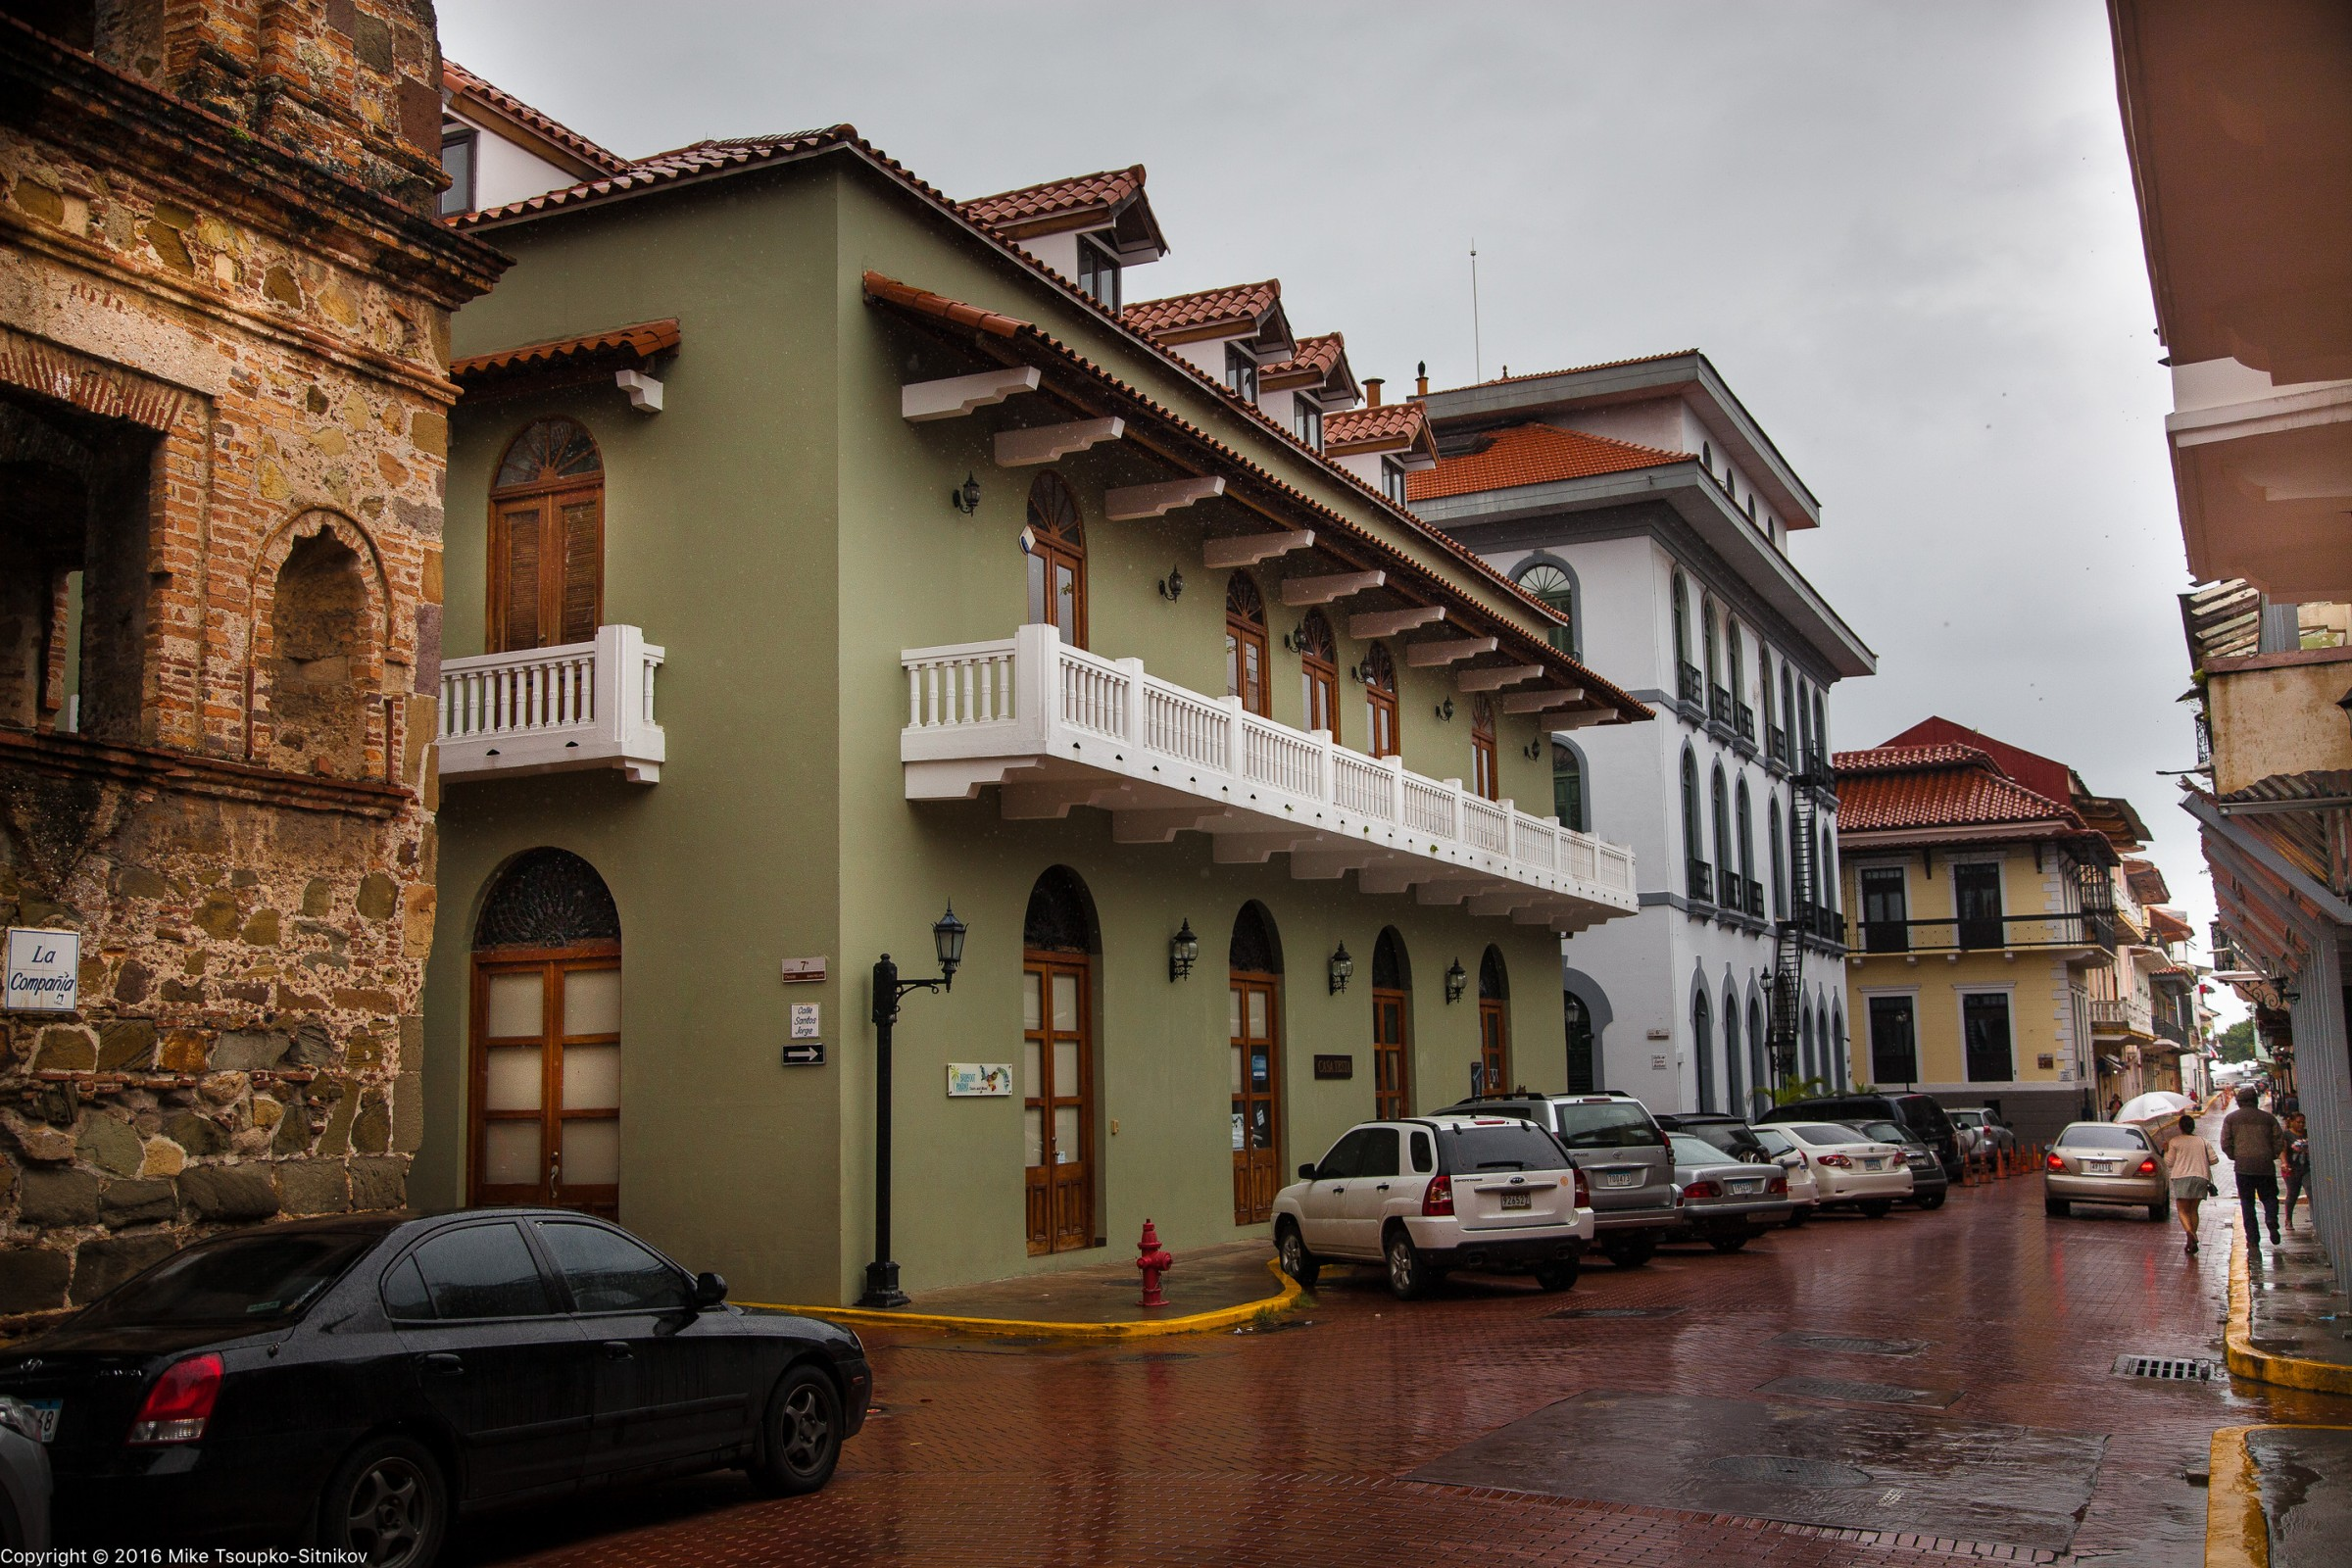 Panama City - the touristy part of the Old Town